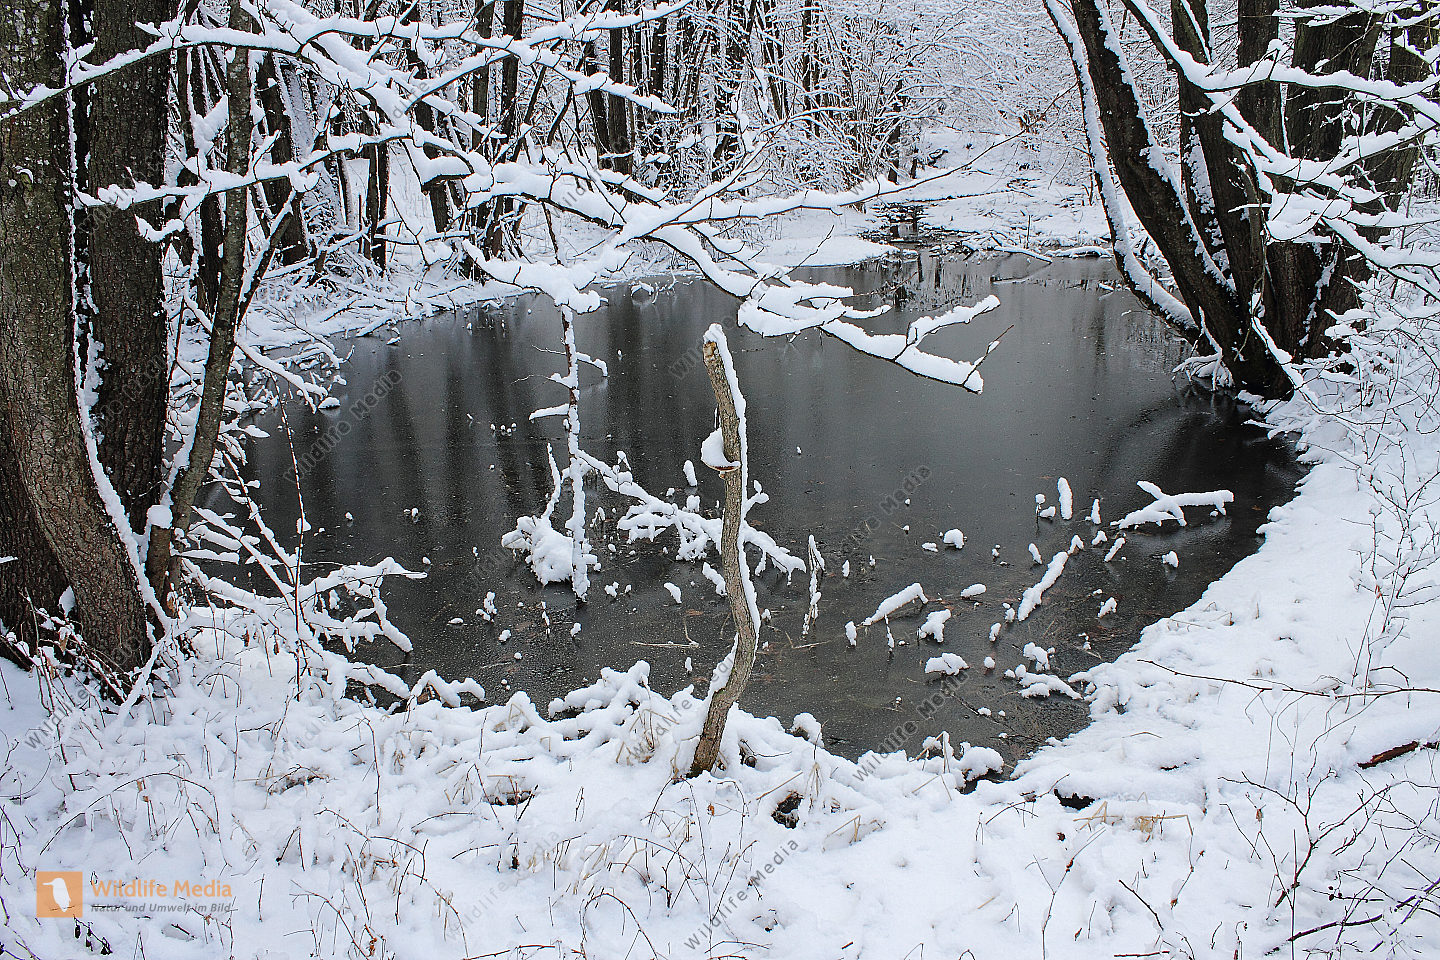 Bestellen teich im winter teich im winter bild for Fische teich winter